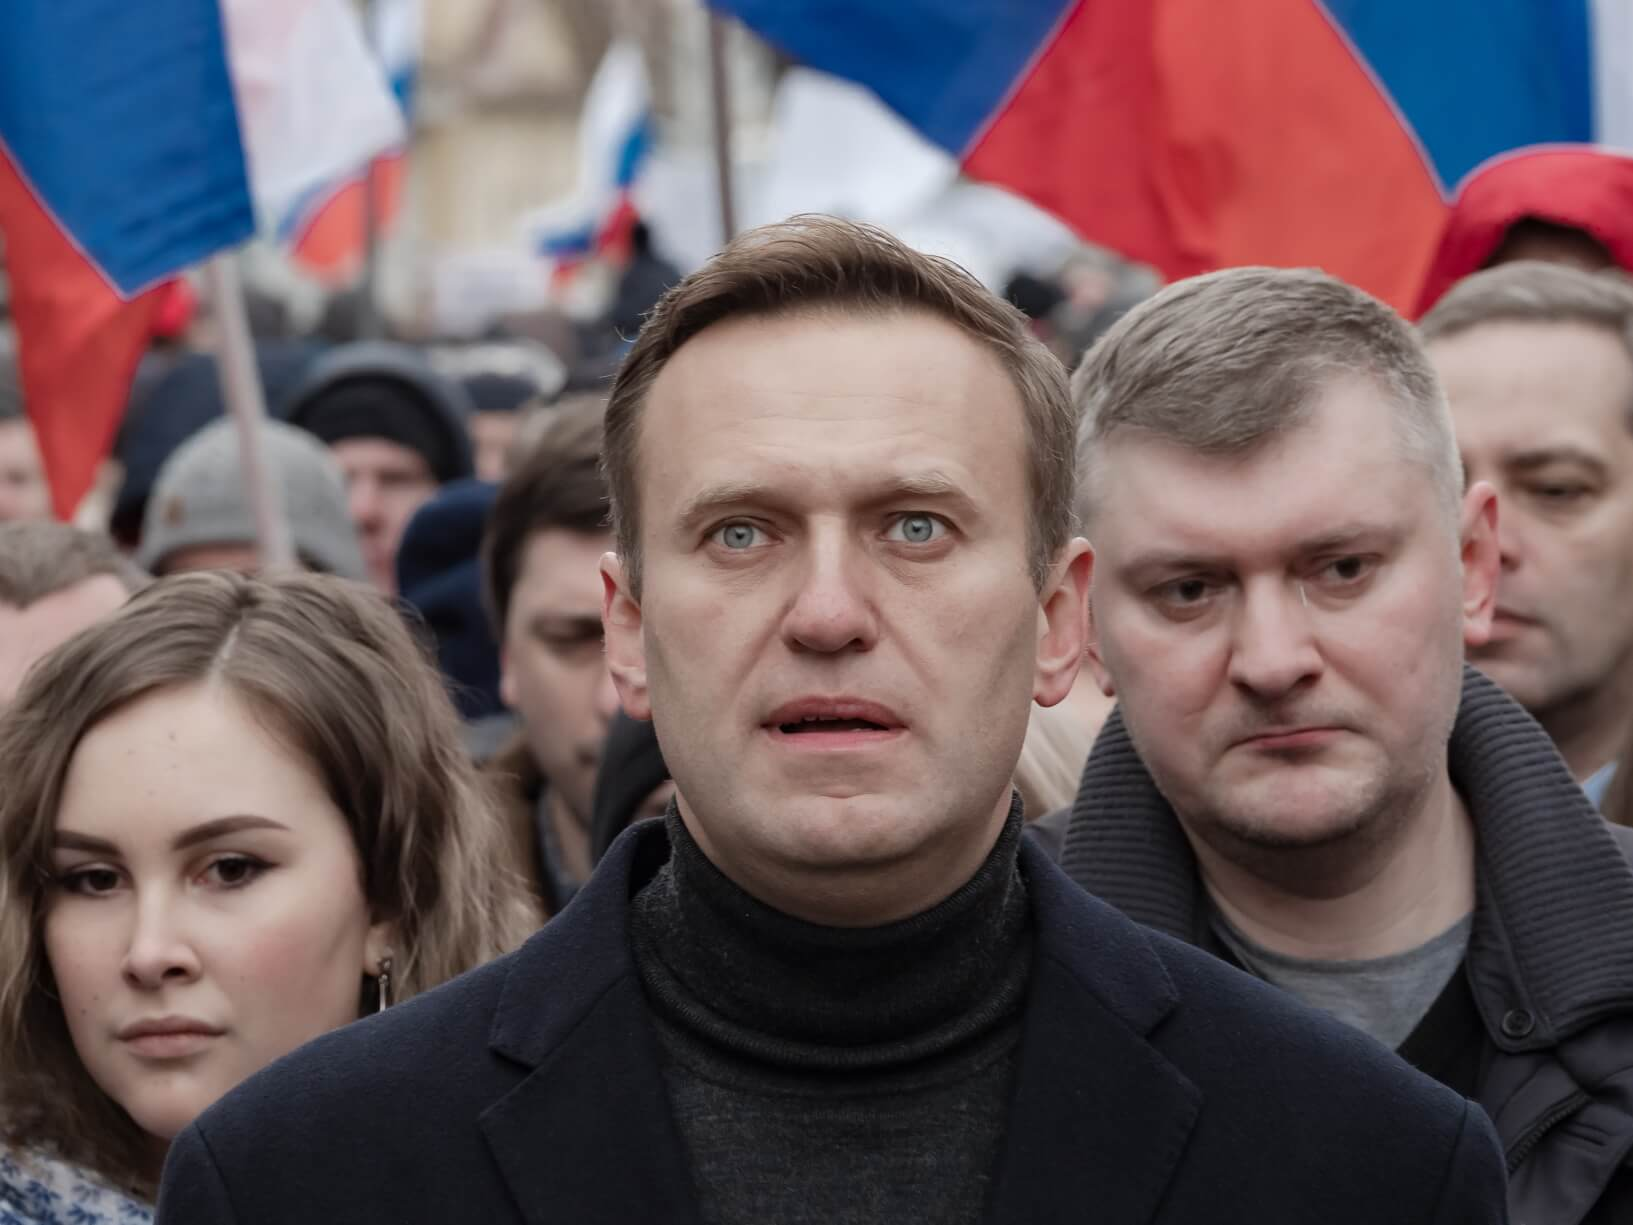 Alexei Navalni among other opposition protestors in February 2020. The protest was held in memory of opposition figure Boris Nemtsov. © Flickr / Michał Siergiejevicz